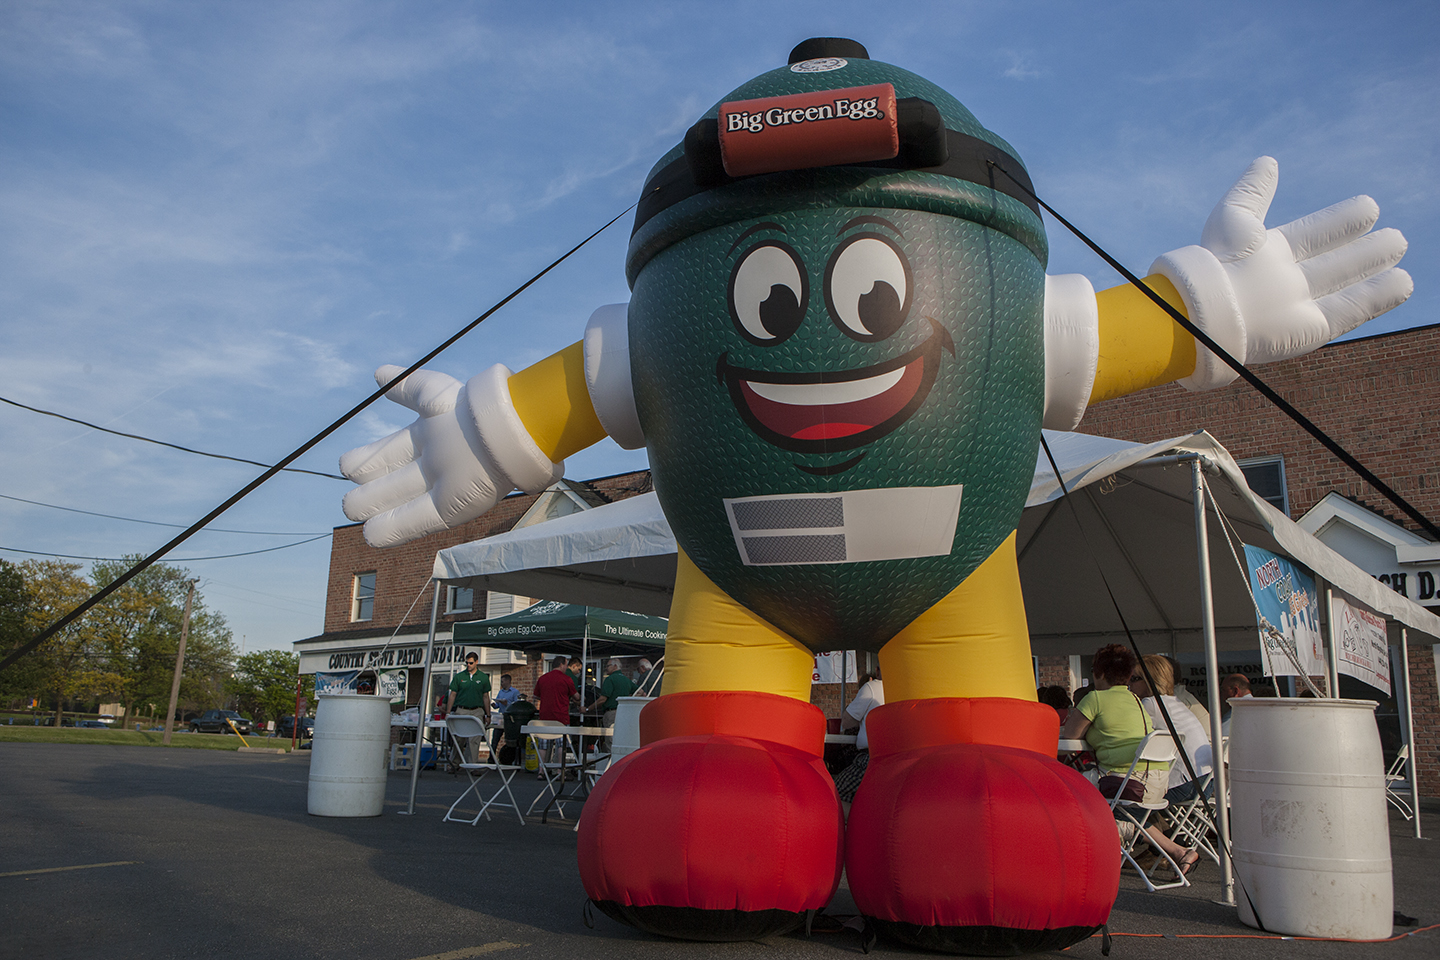 North Coast EGGfest Big Green Eddie at Country Stove Patio & Spa